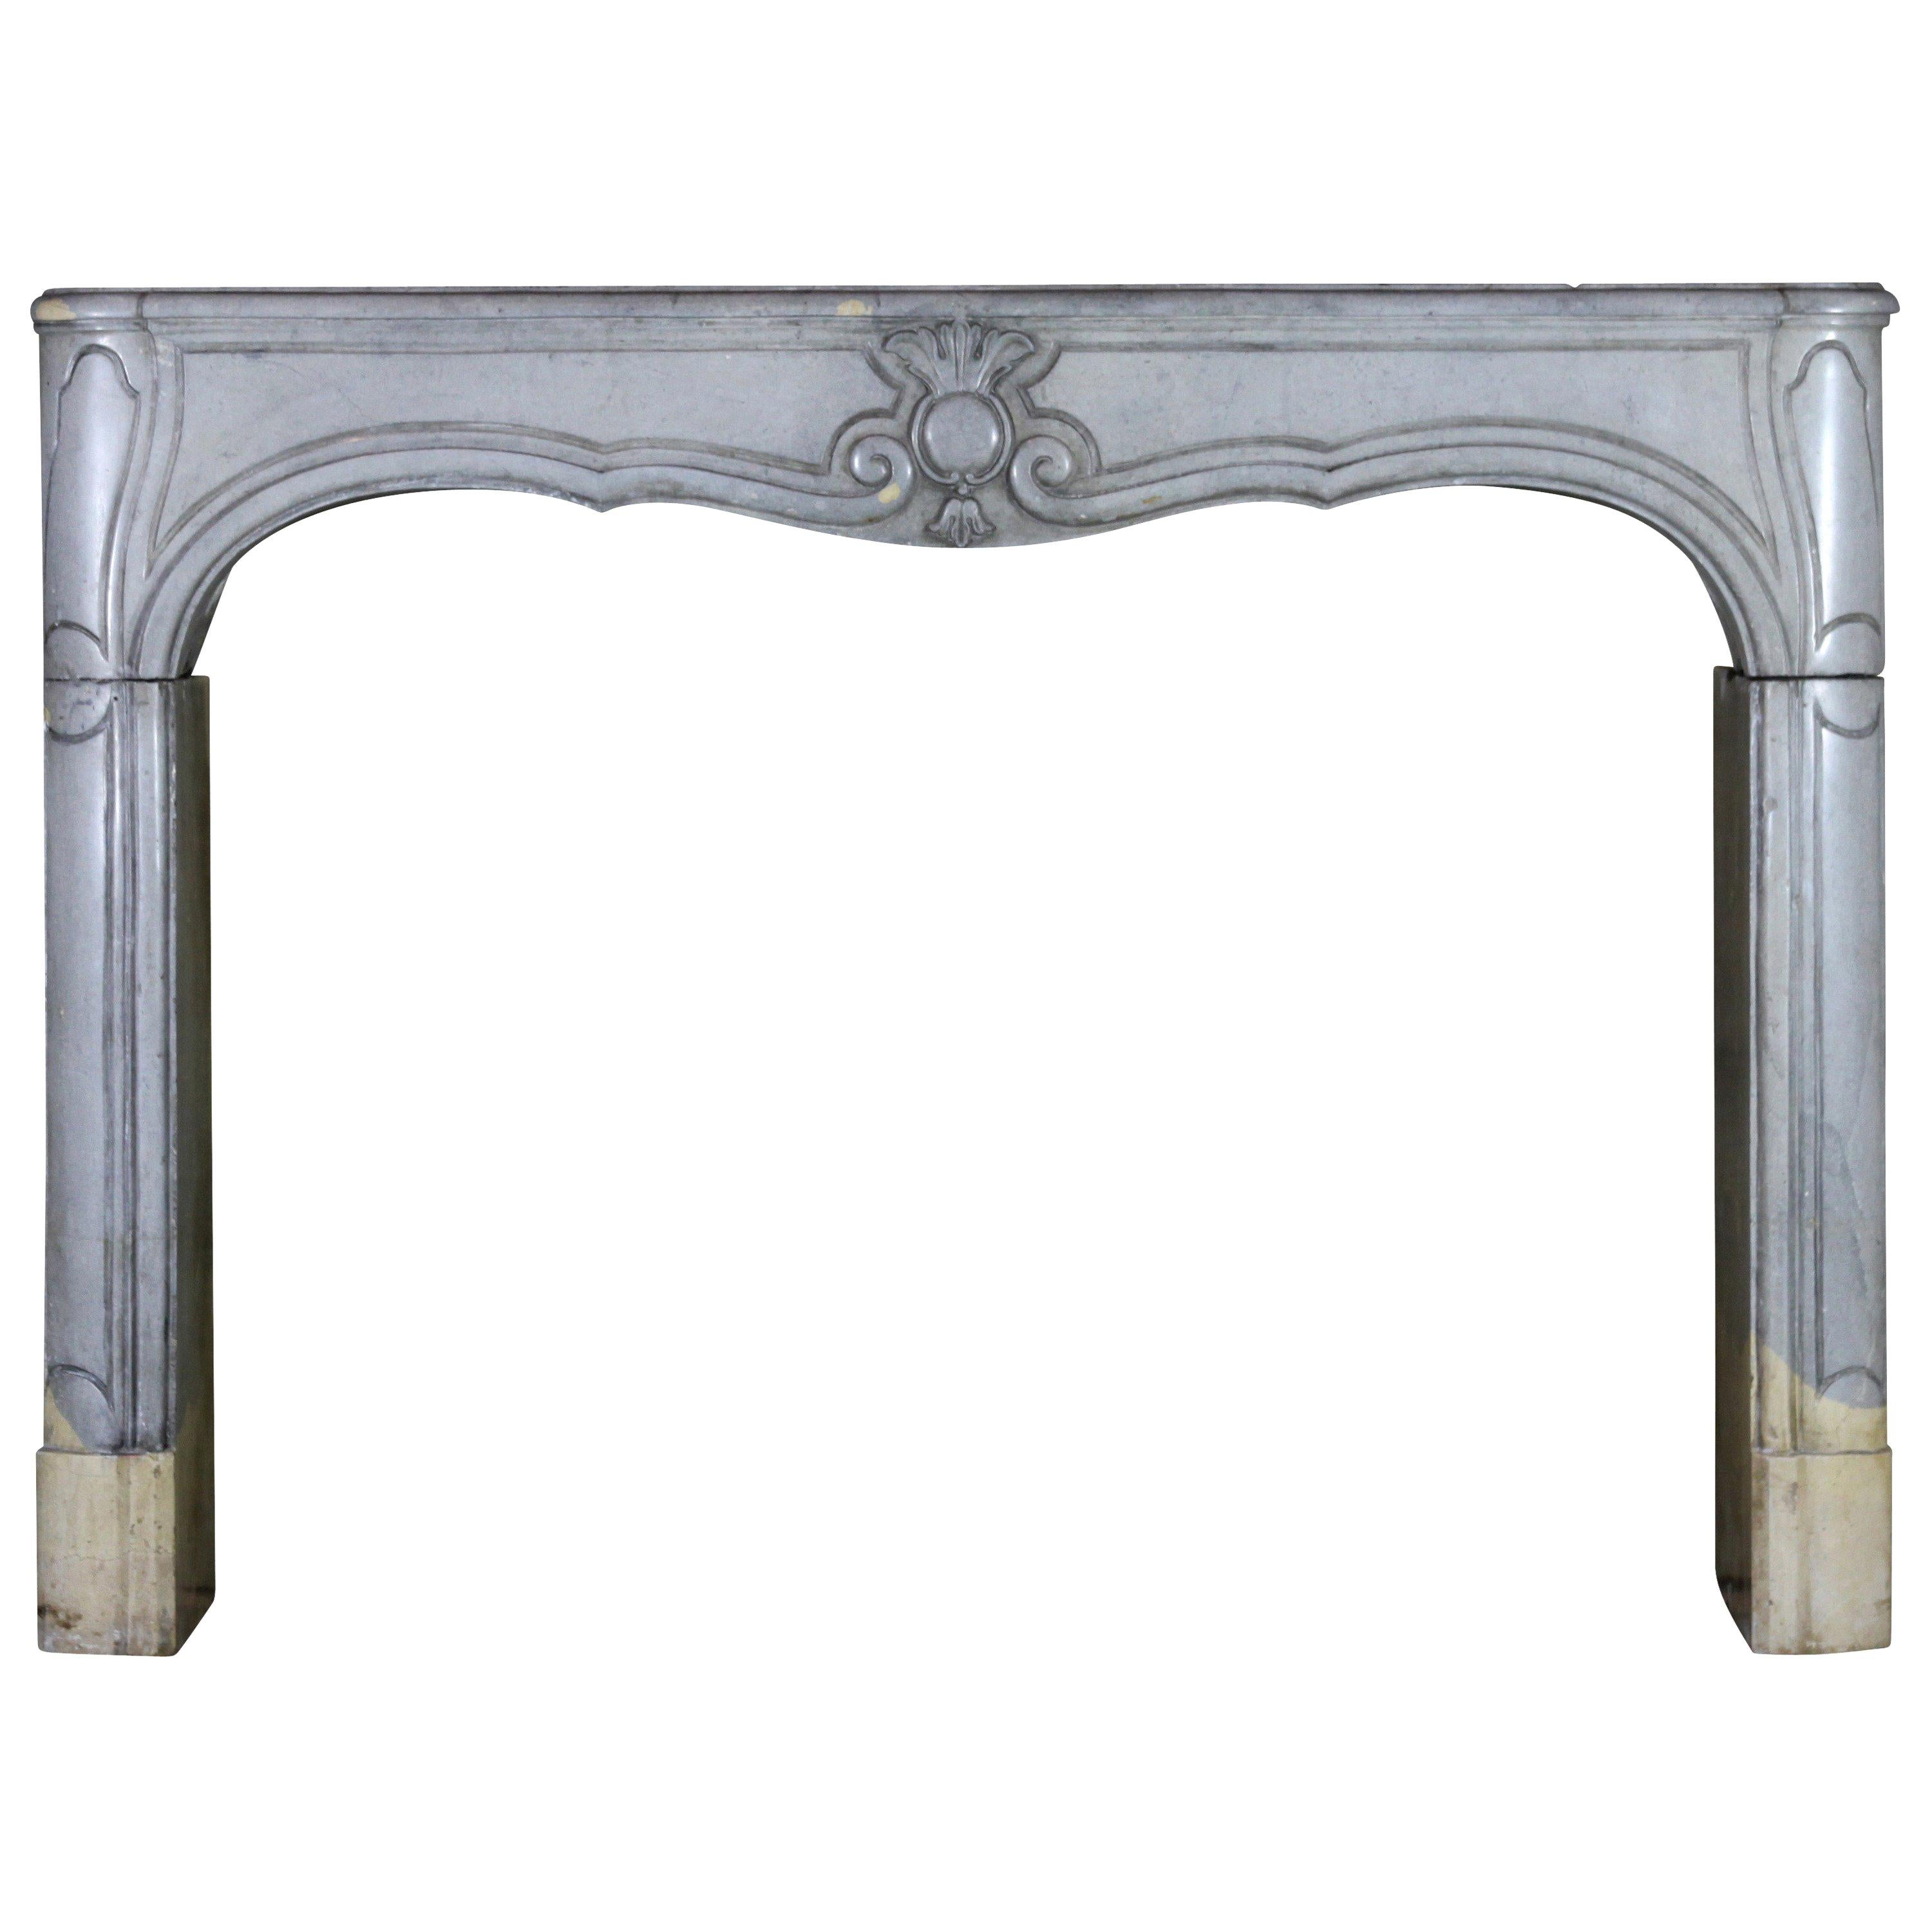 18th Century French Bleu Bicolor Stone Antique Fireplace Surround